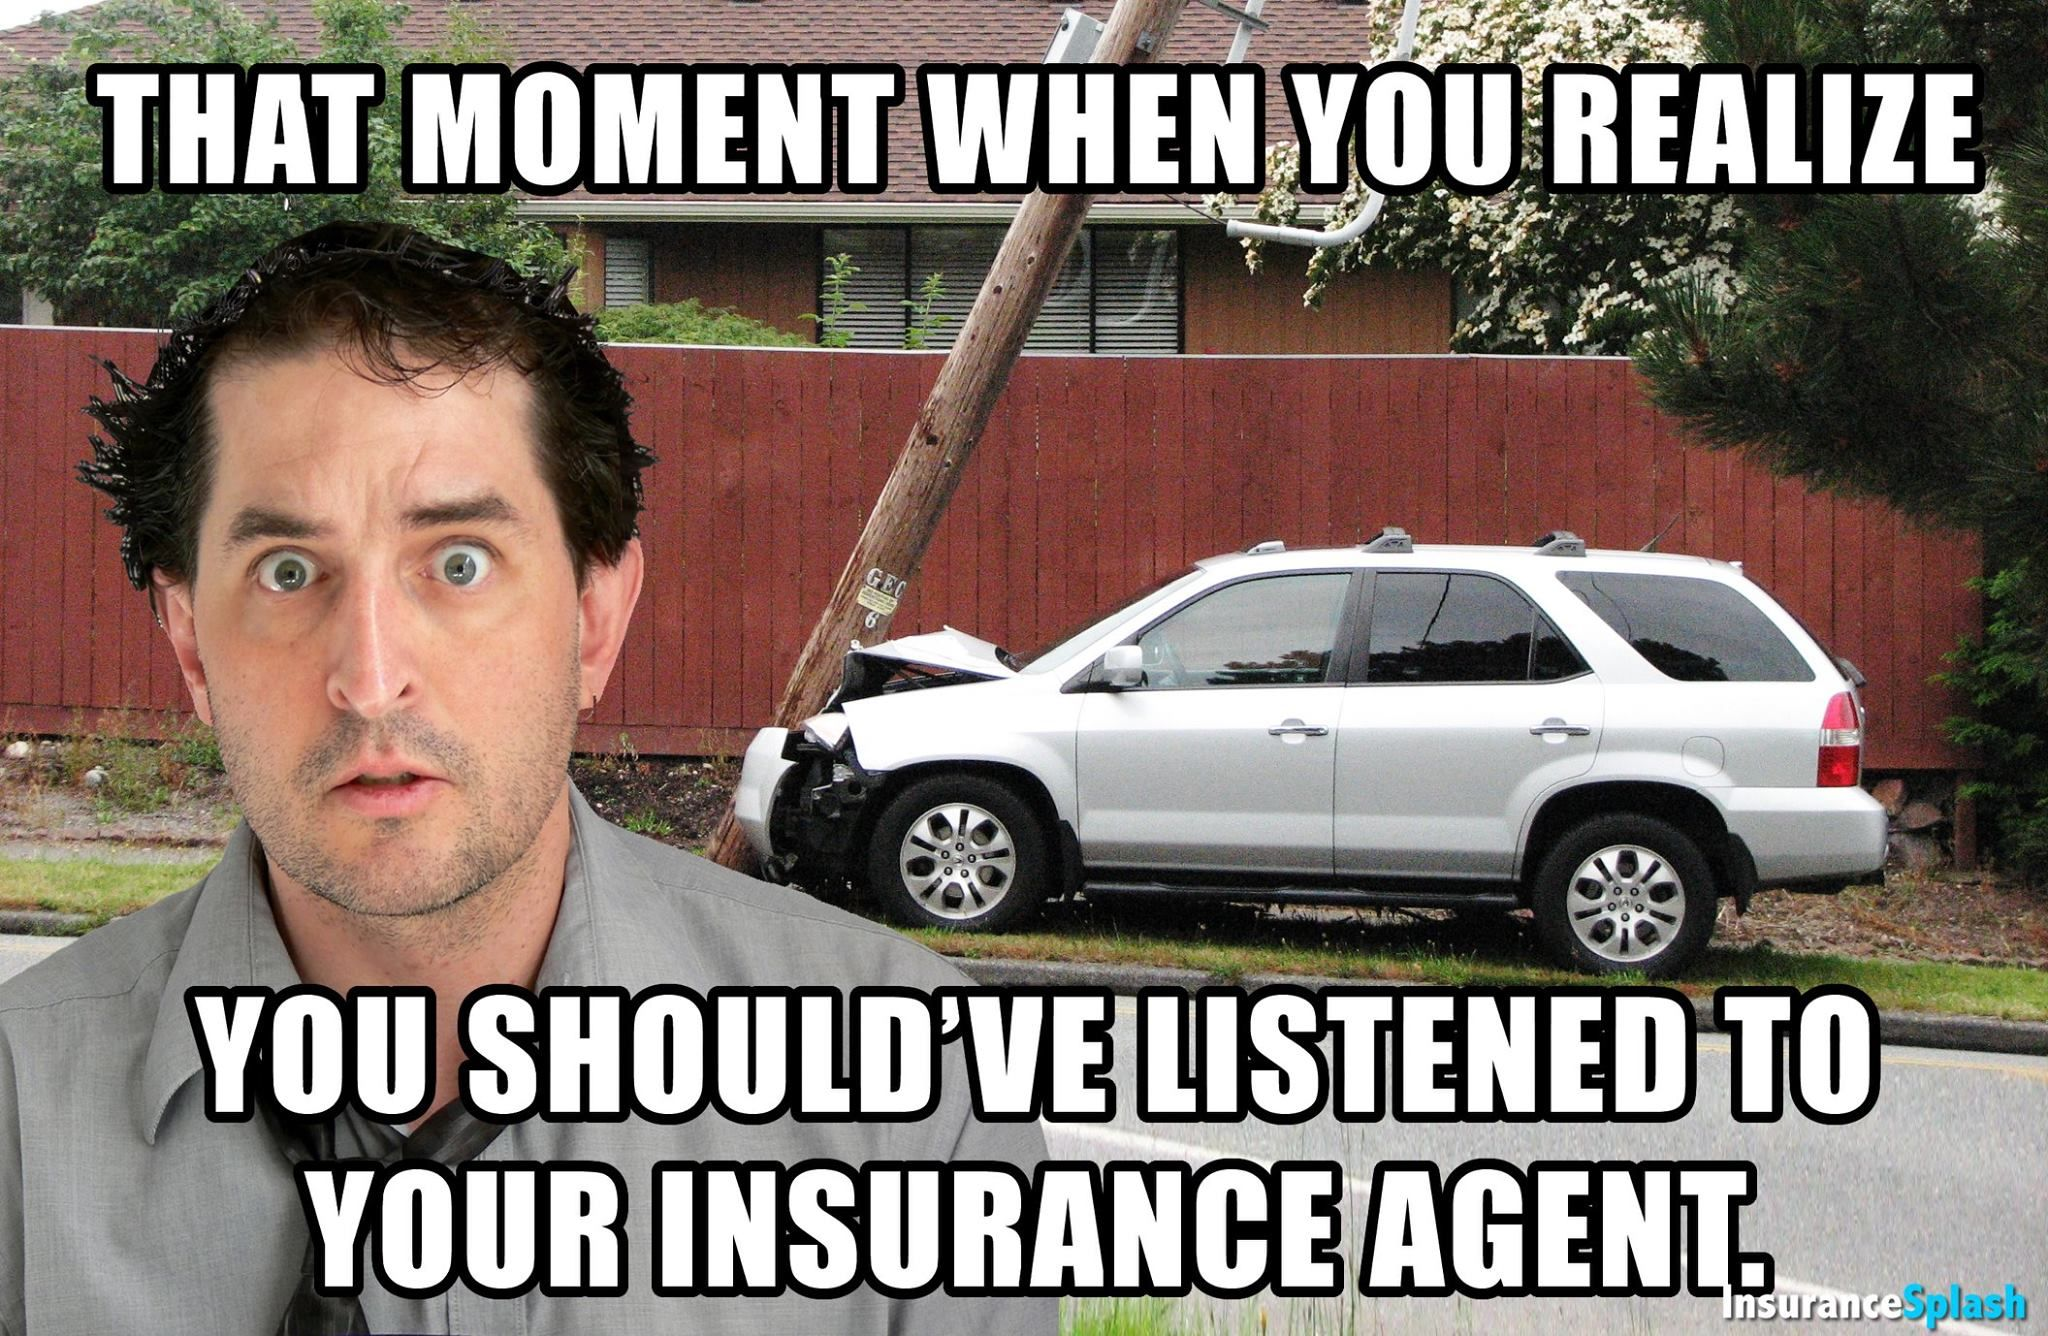 This Happens Way Too Often Insurance Marketing Life Insurance Quotes Insurance Meme